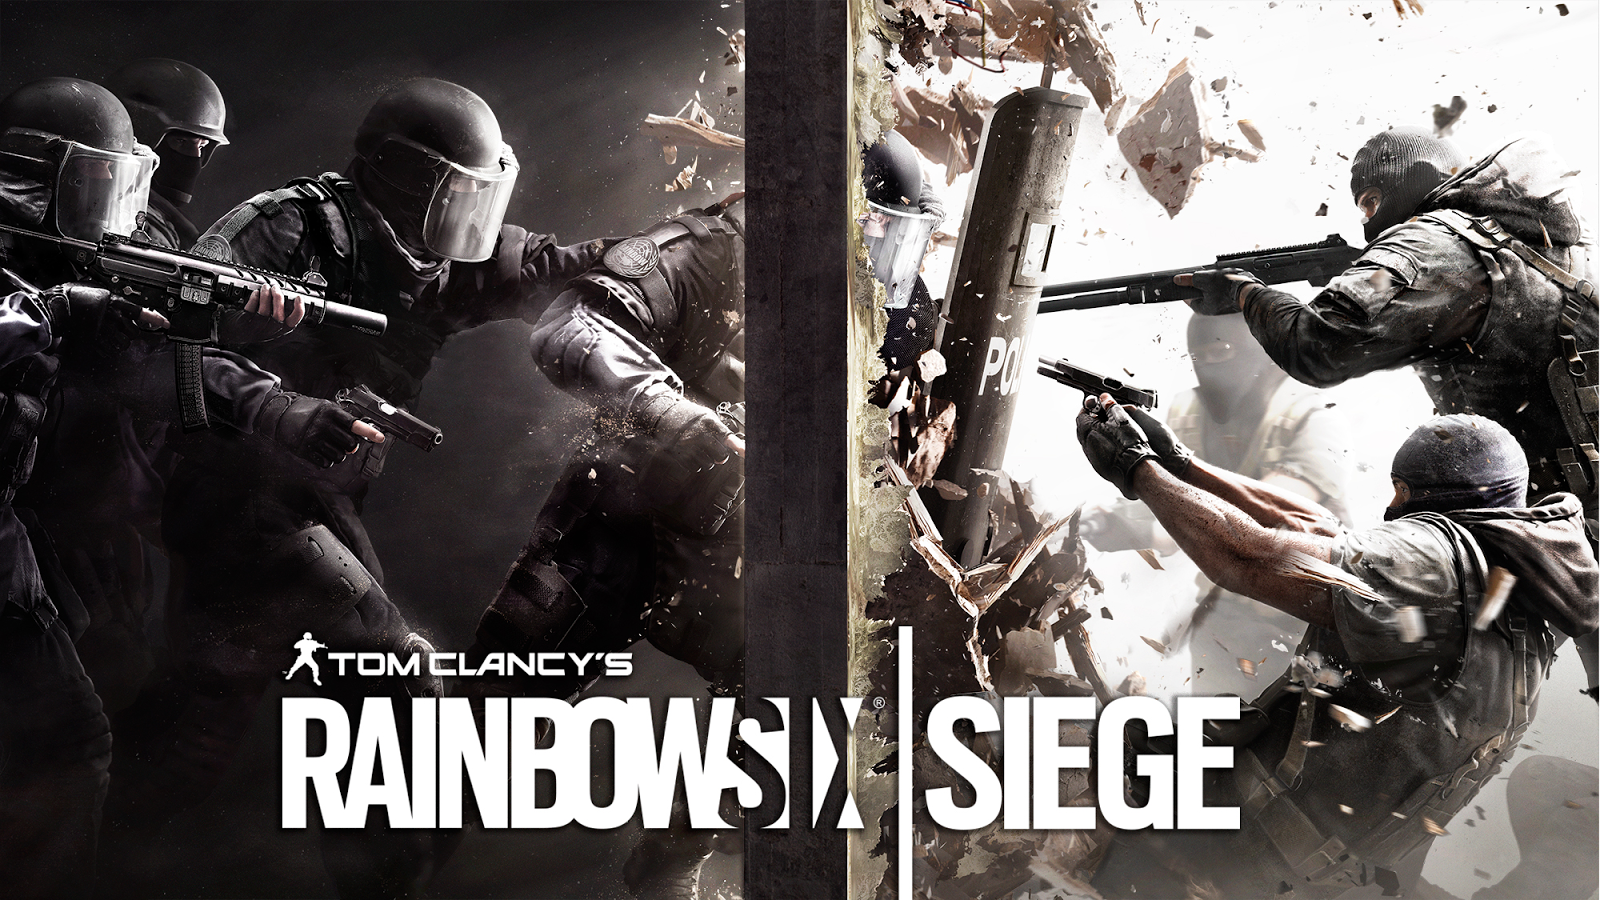 You Can Play Rainbow Six Siege This Weekend For Free